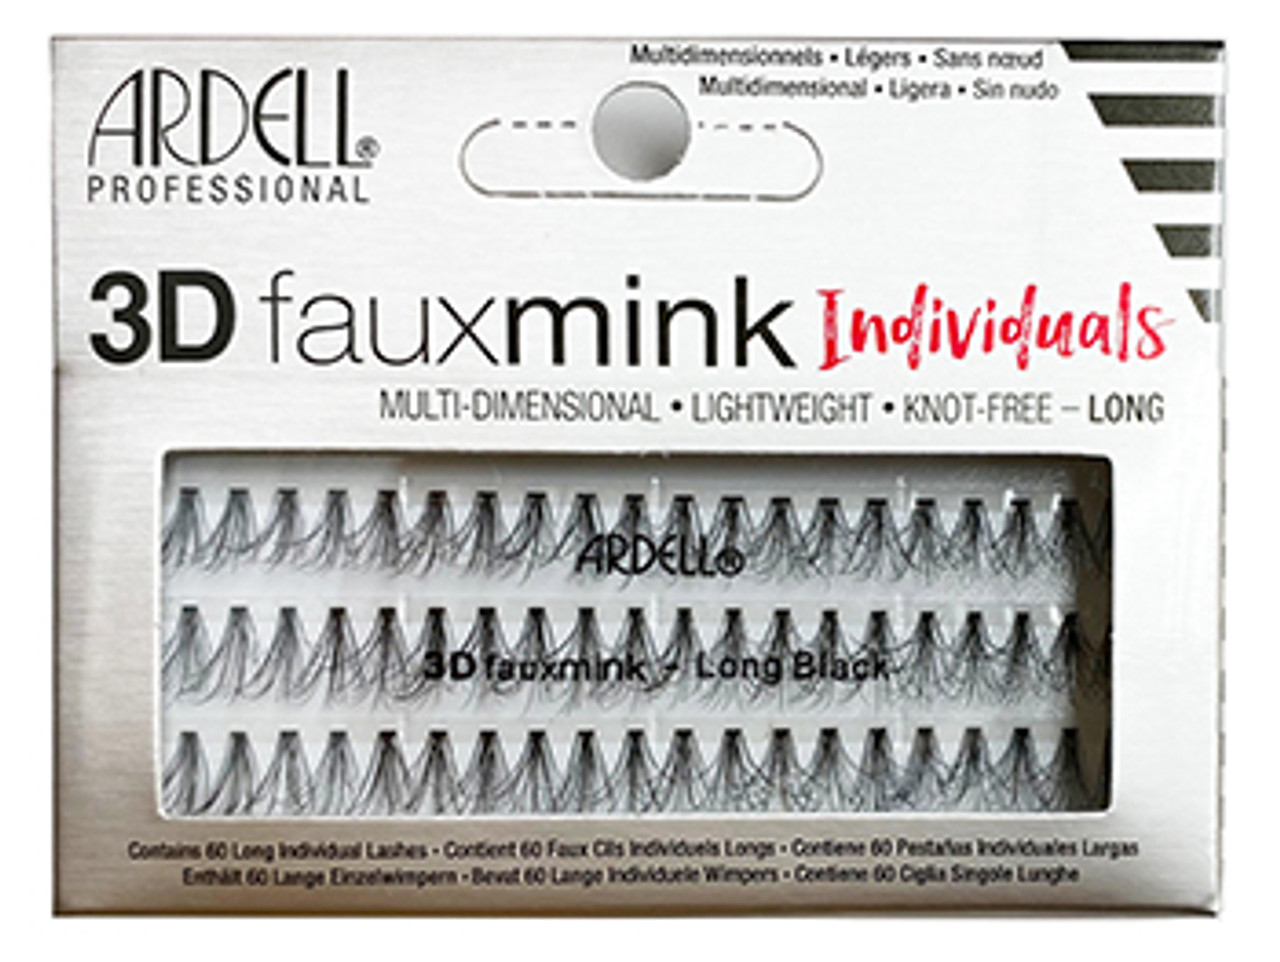 Ardell 3D fauxmink Individuals - Long Black